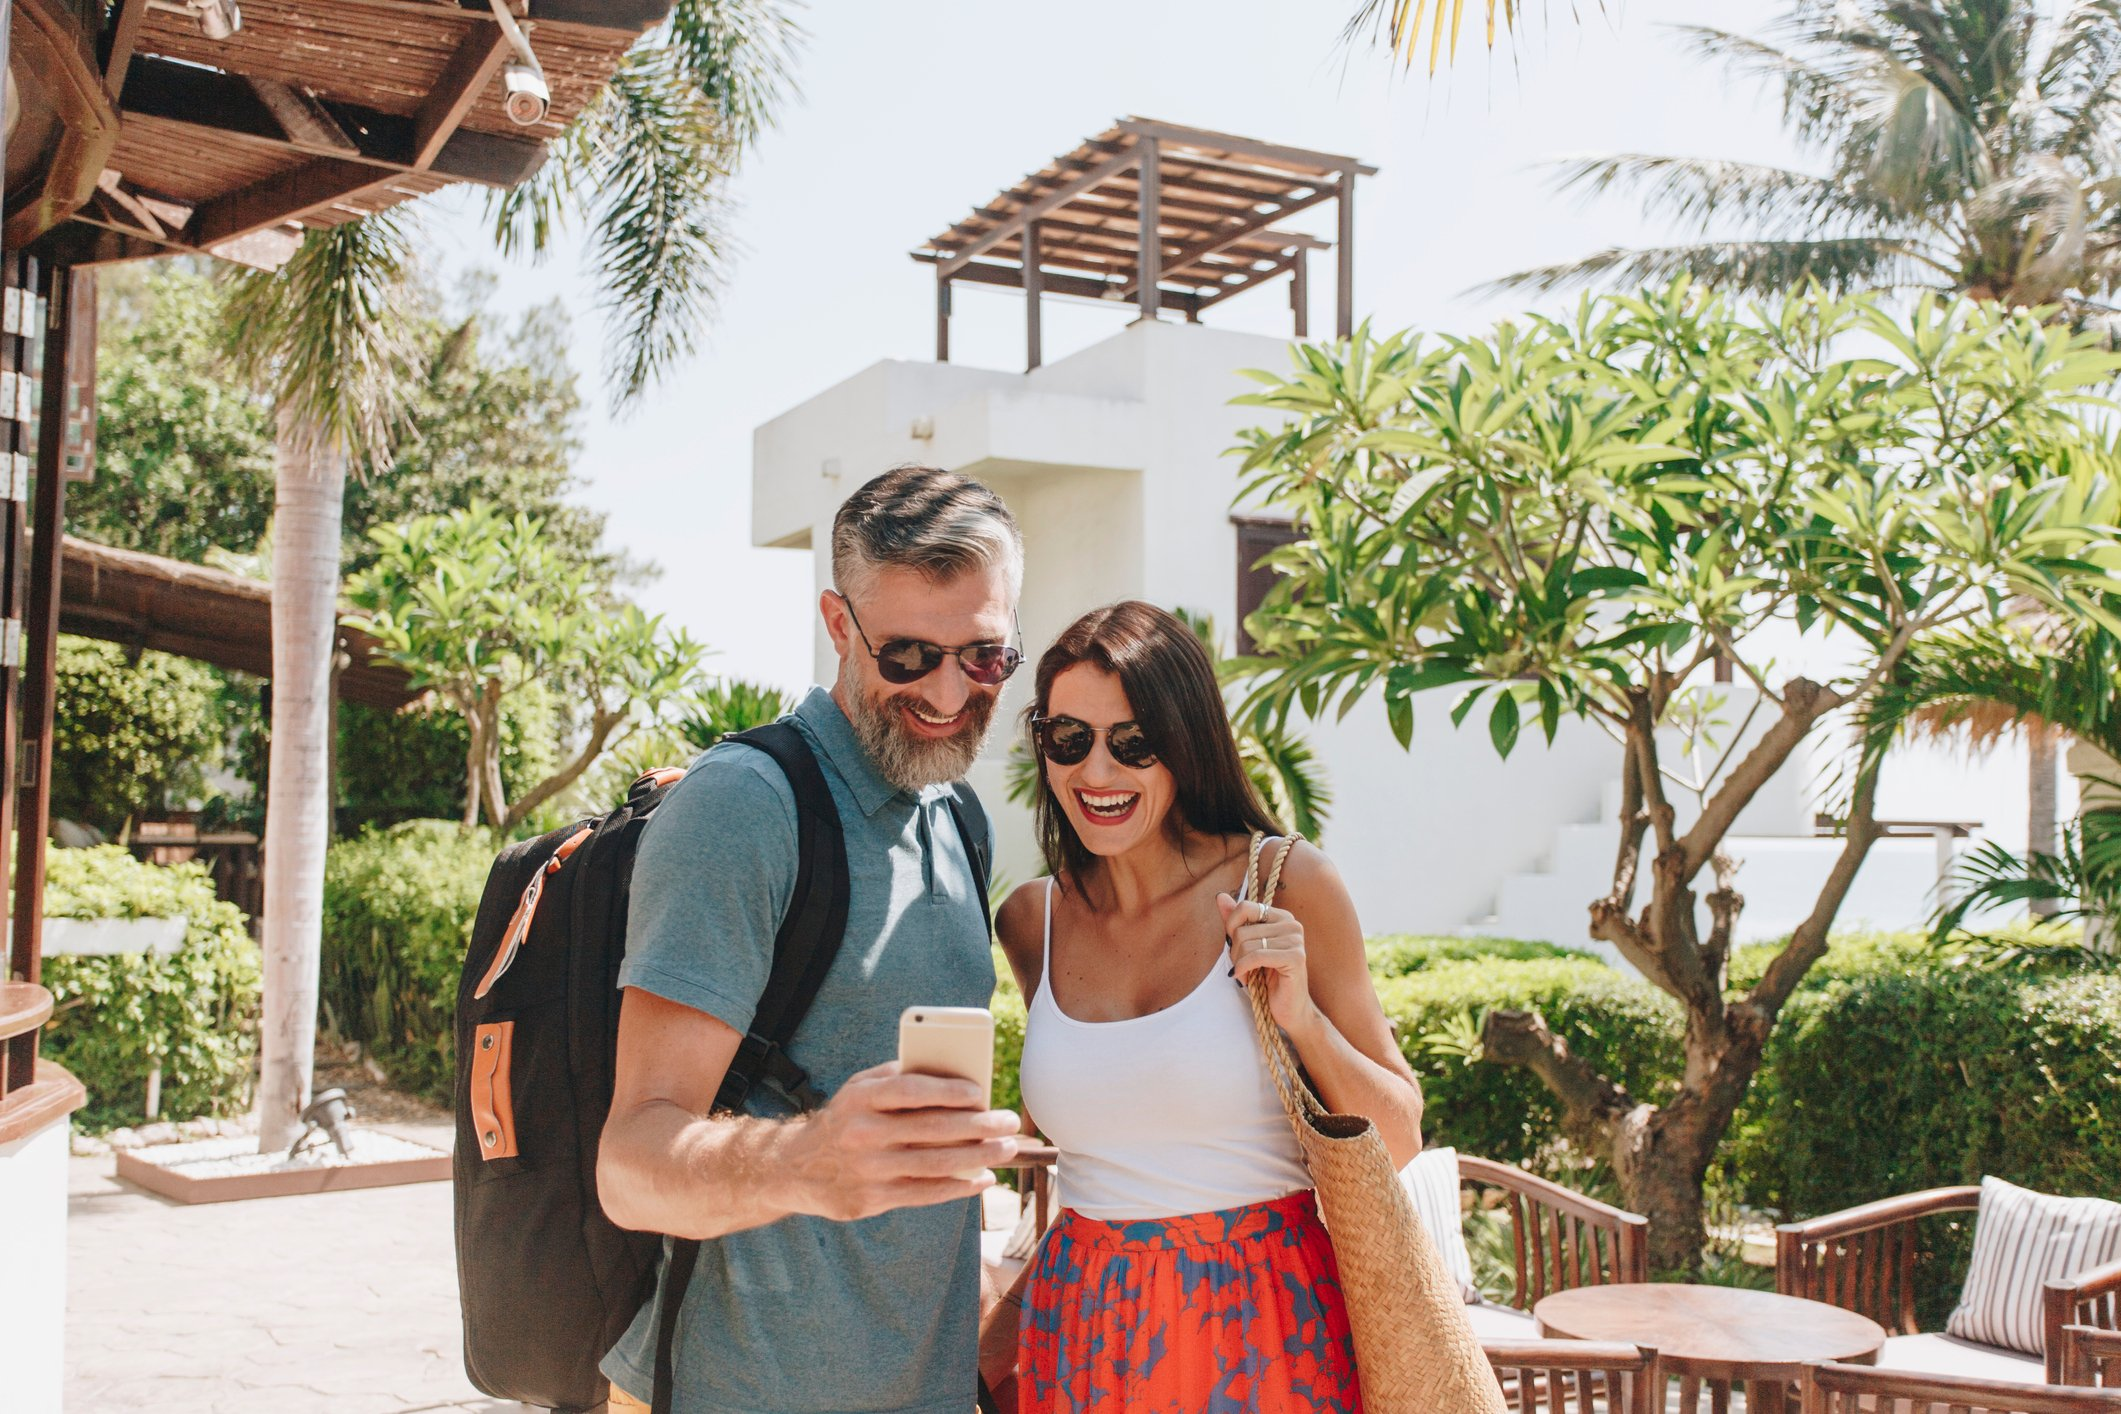 mature man and woman taking a selfie in front of a hotel and palm trees